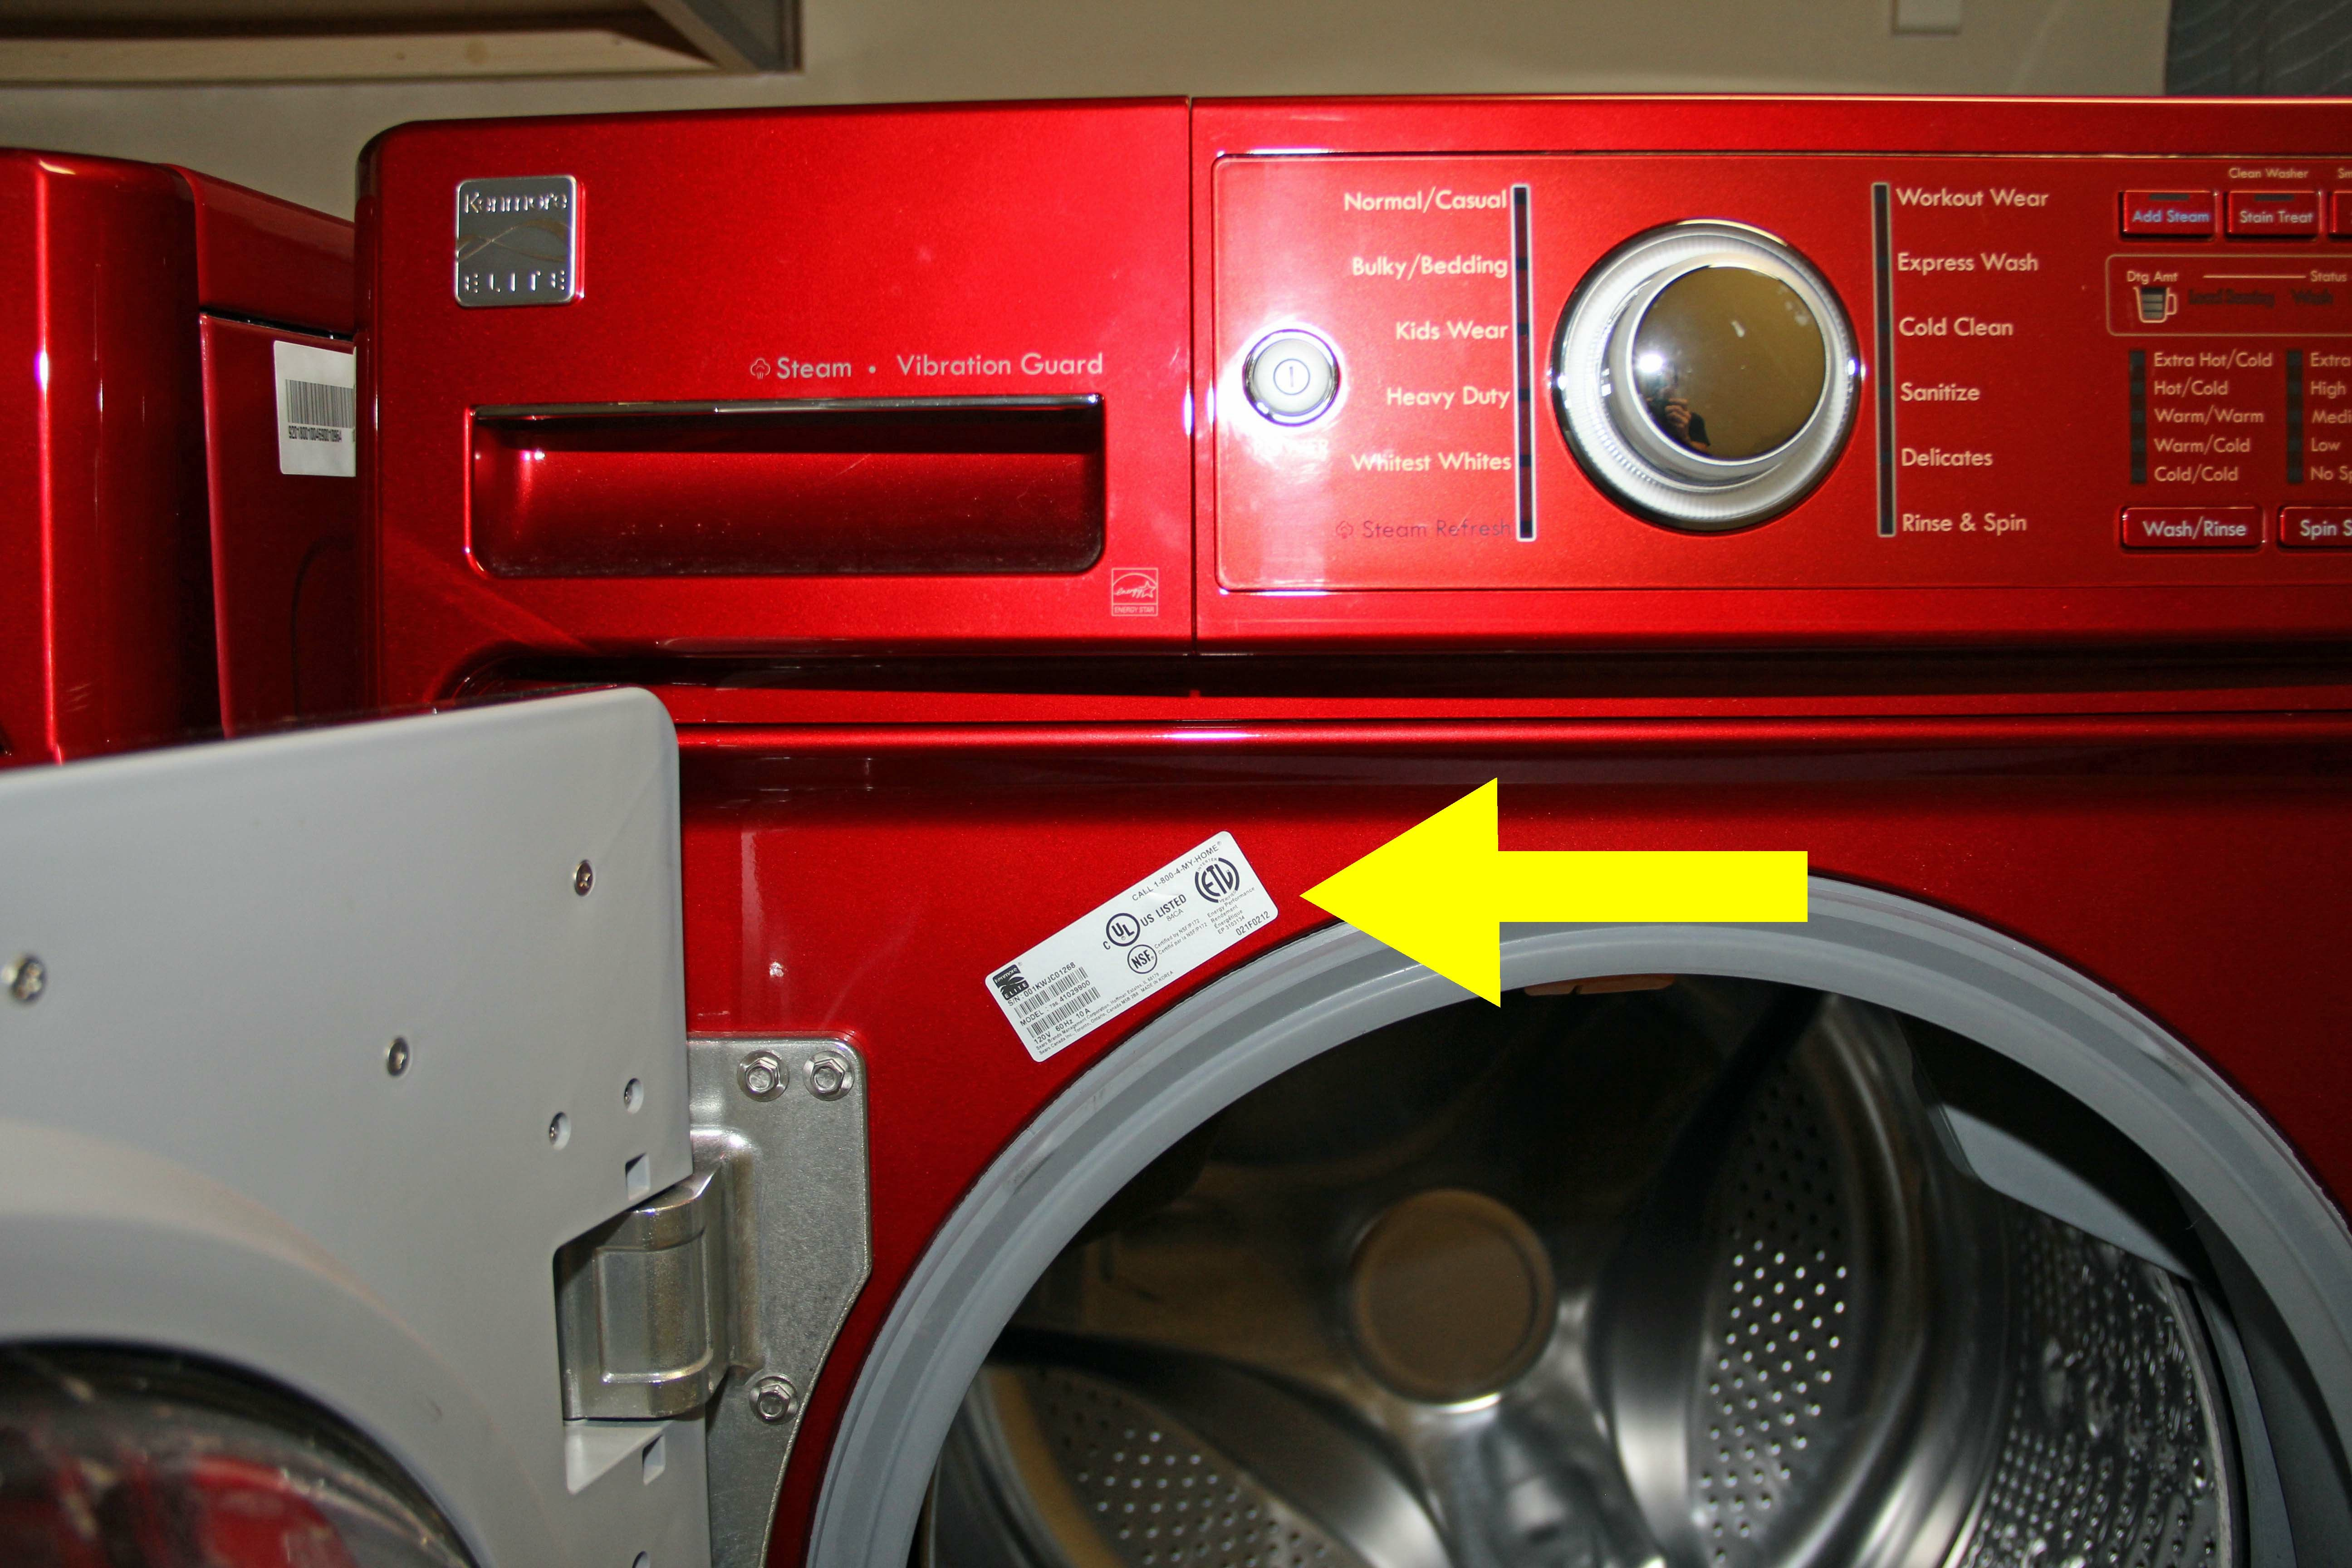 How to Empty and Clean Out Your Washer's Drain Pump Filter